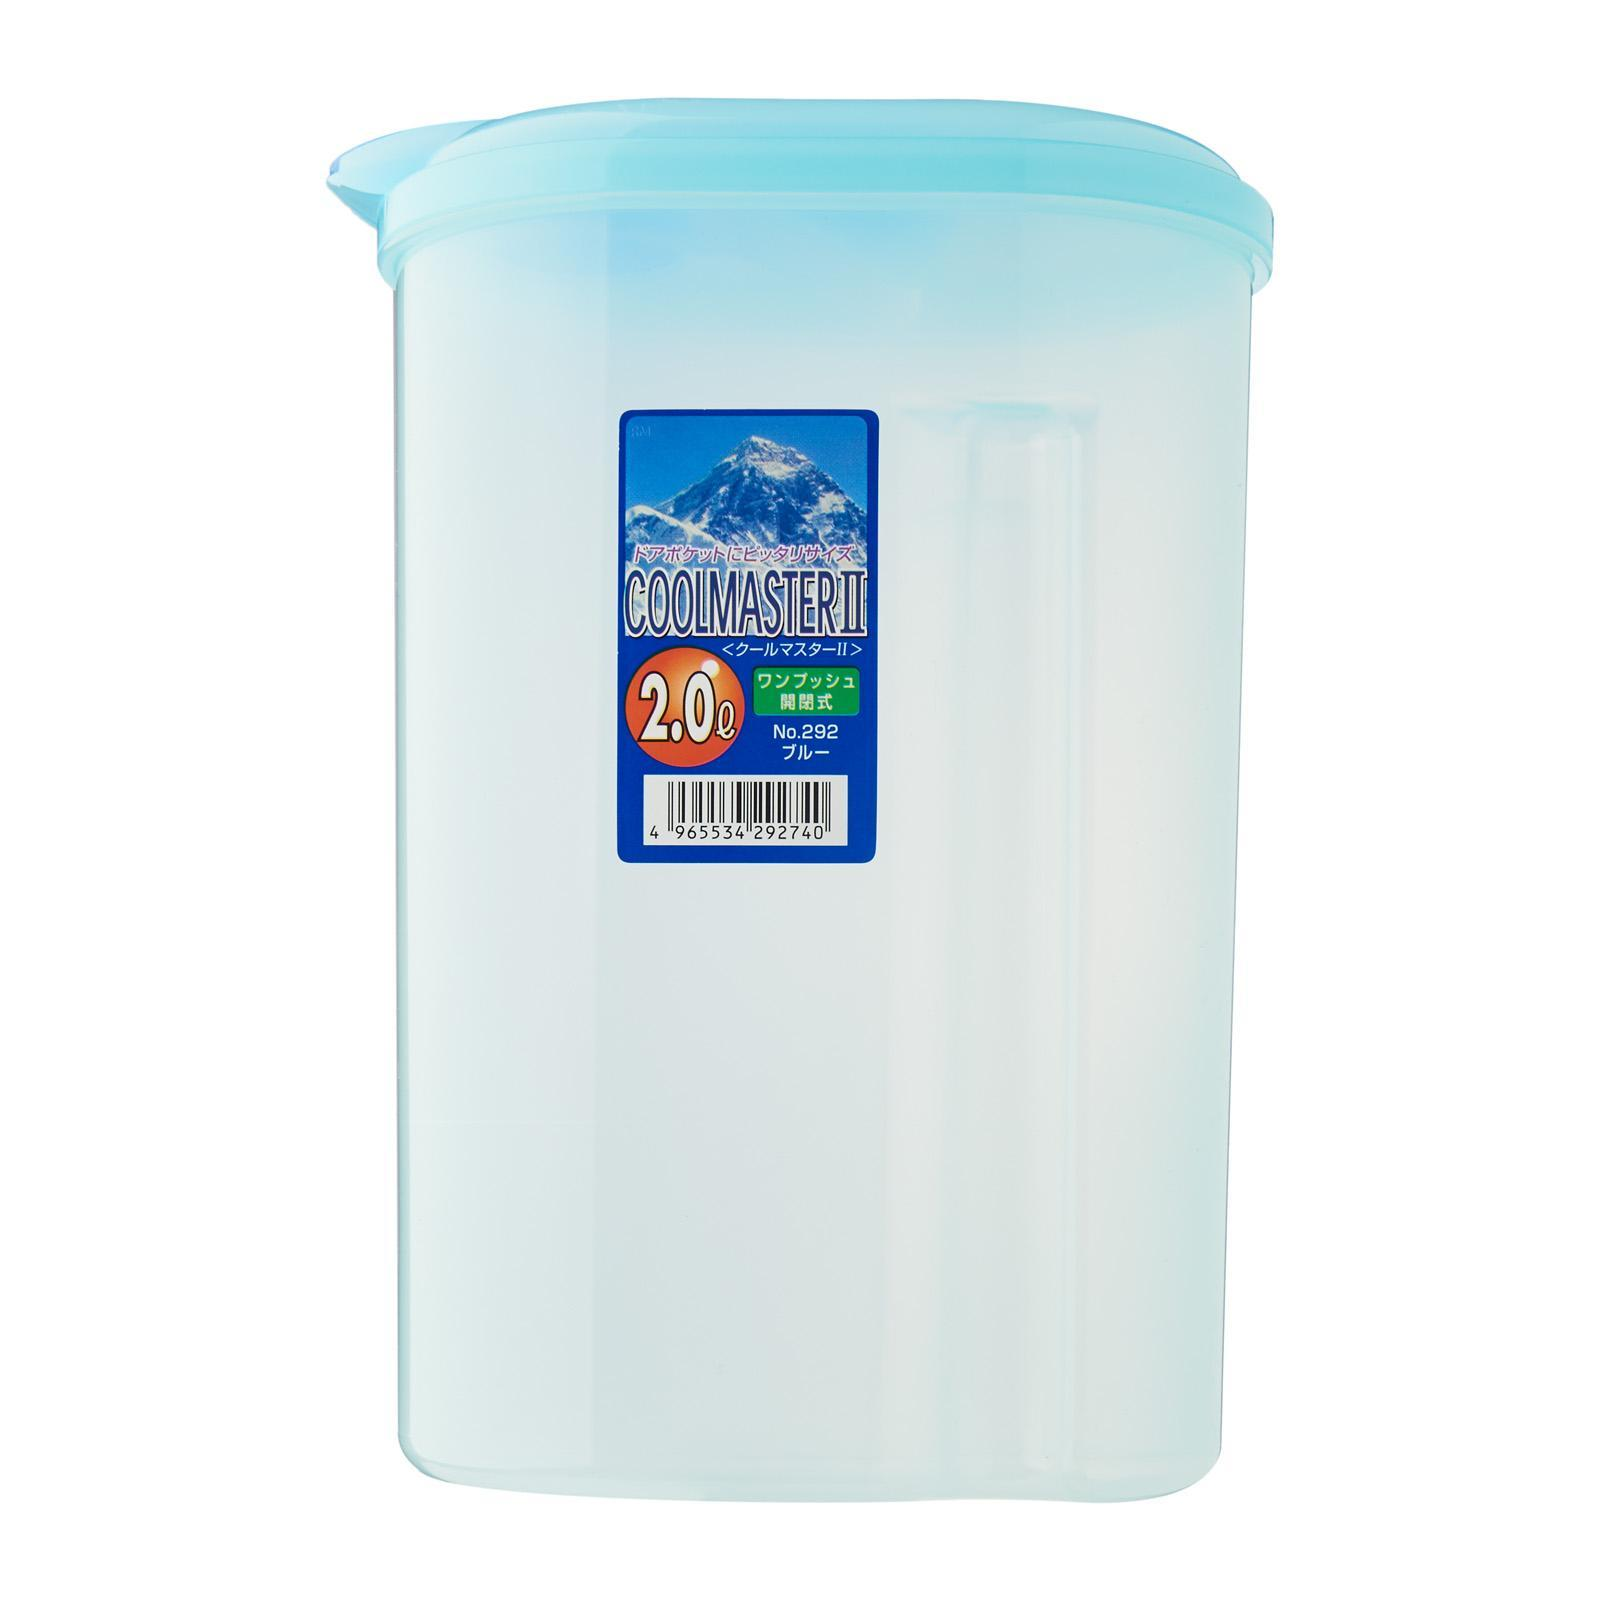 Coolmaster II Plastic Water Jug 2.0L (Greenish Blue)